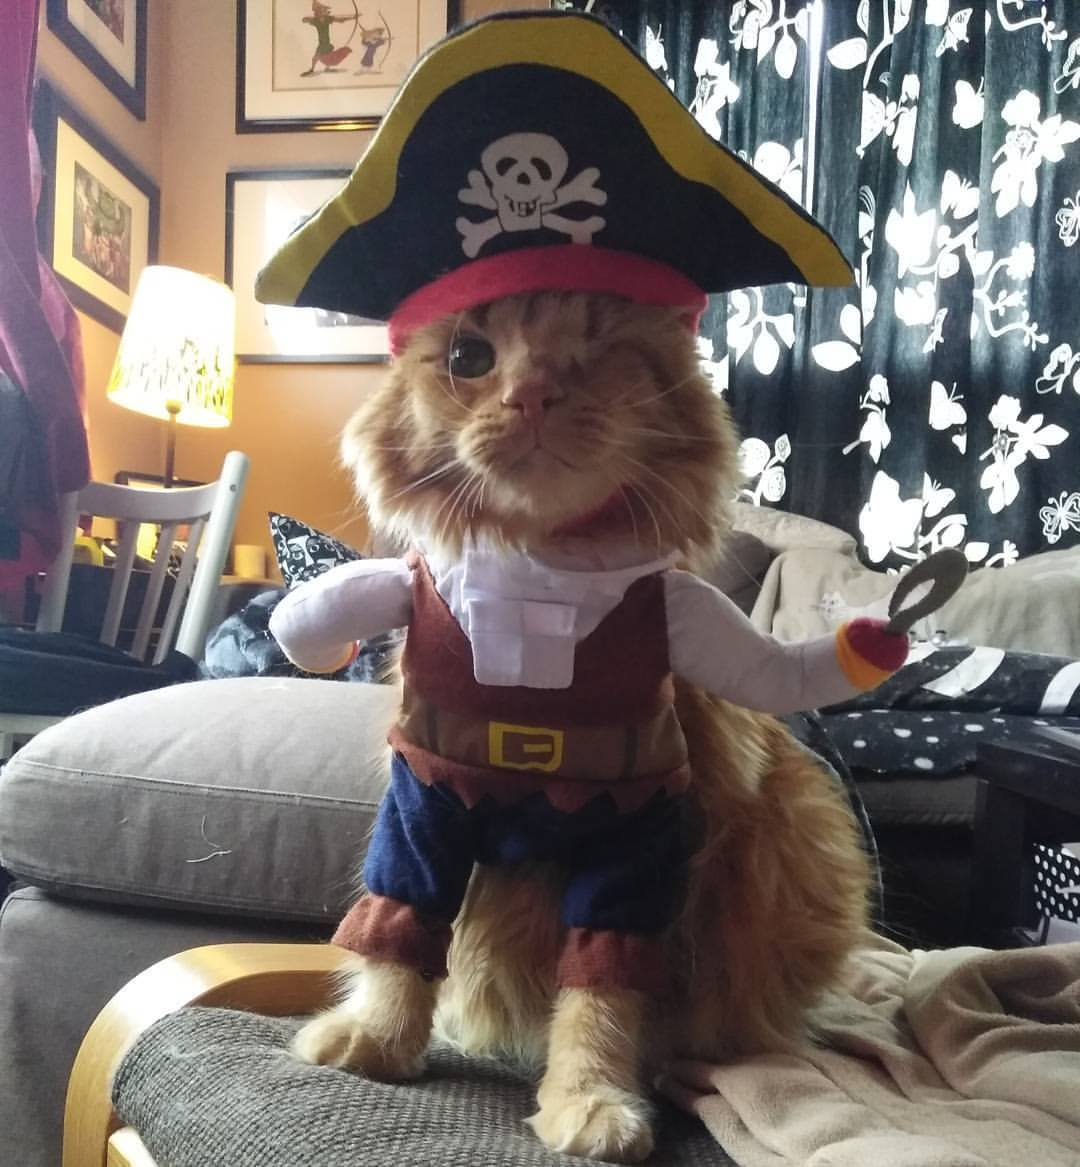 Oops! - Ahoy, matey! Looks like the page you were looking for has walked the plank. Sorry about that!